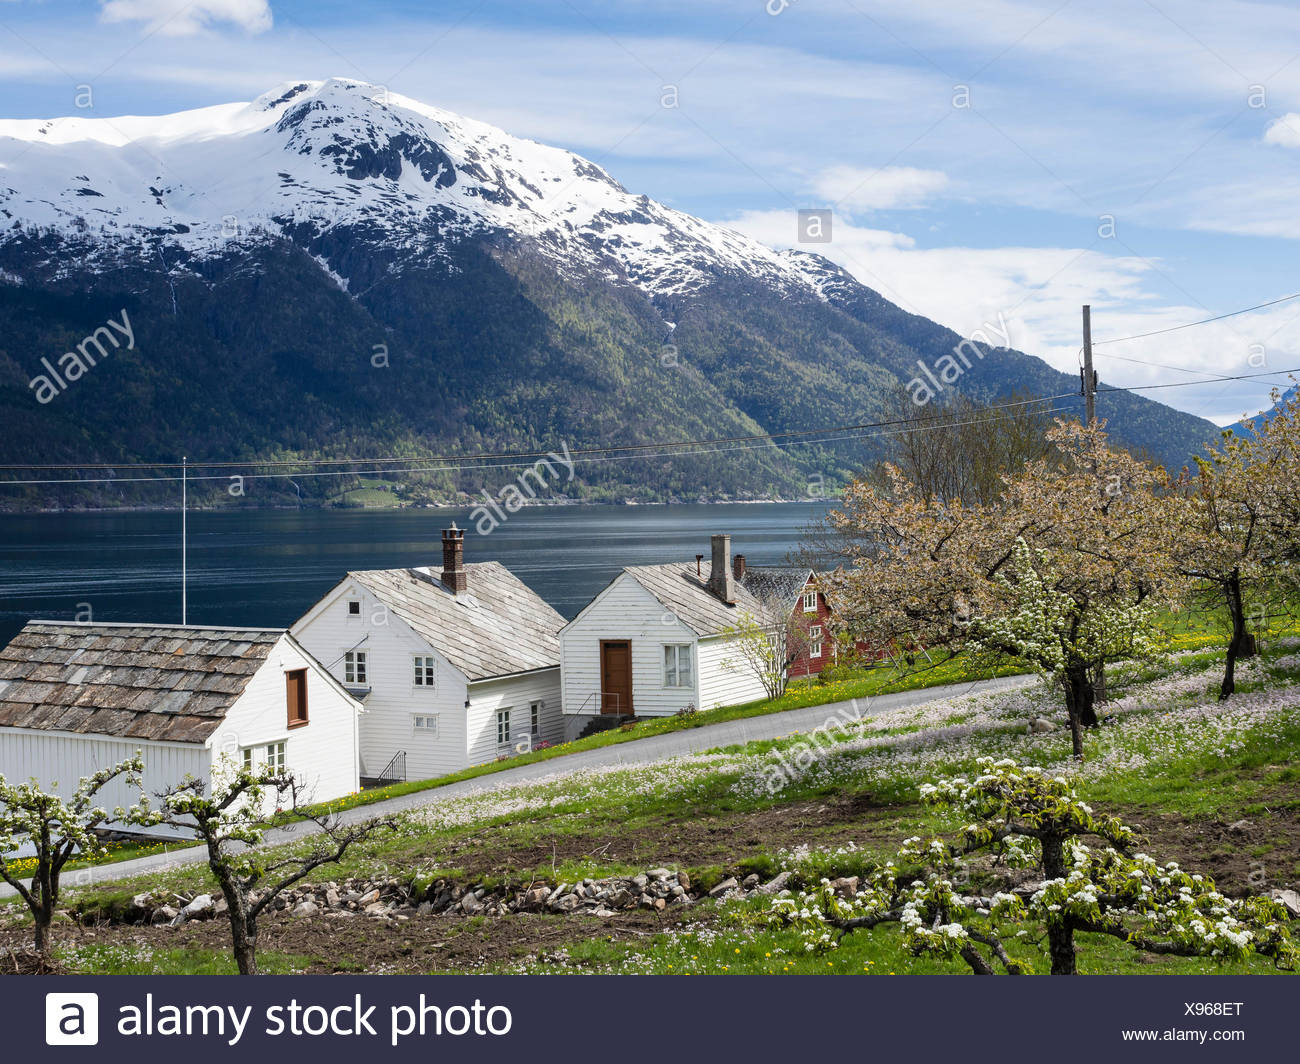 View of snow-covered mountains, fjord and apple trees in bloom, spring, white houses, Hardangerfjord near Lofthus, Hardanger,  Norway, Scandinavia, Europe - Stock Image